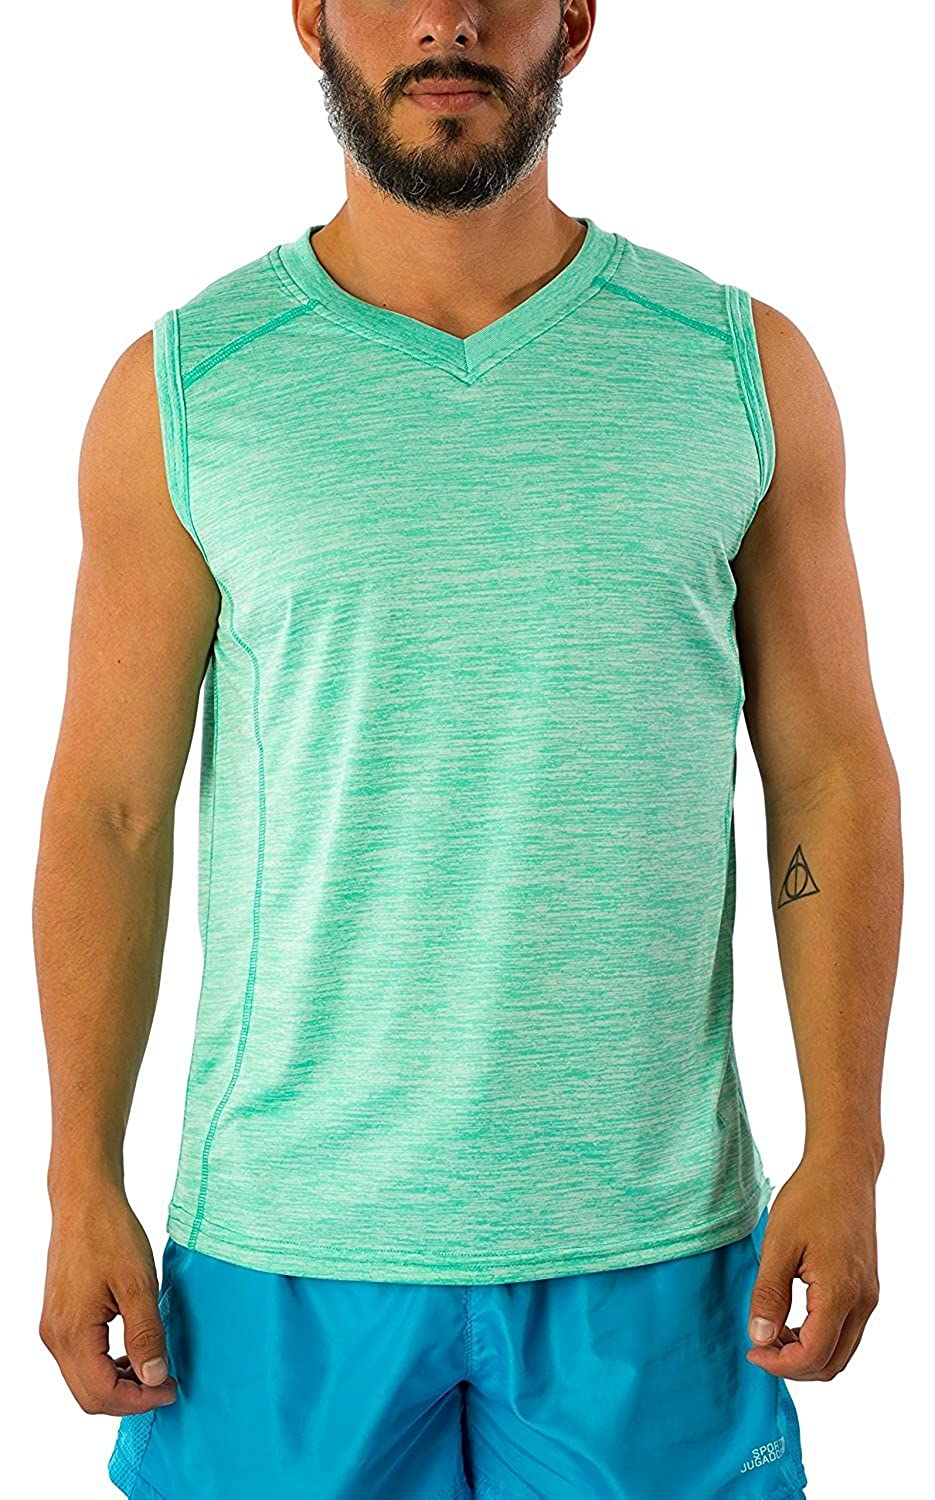 Exist Men's Dri Fit Sleeveless Muscle Tank DFM017